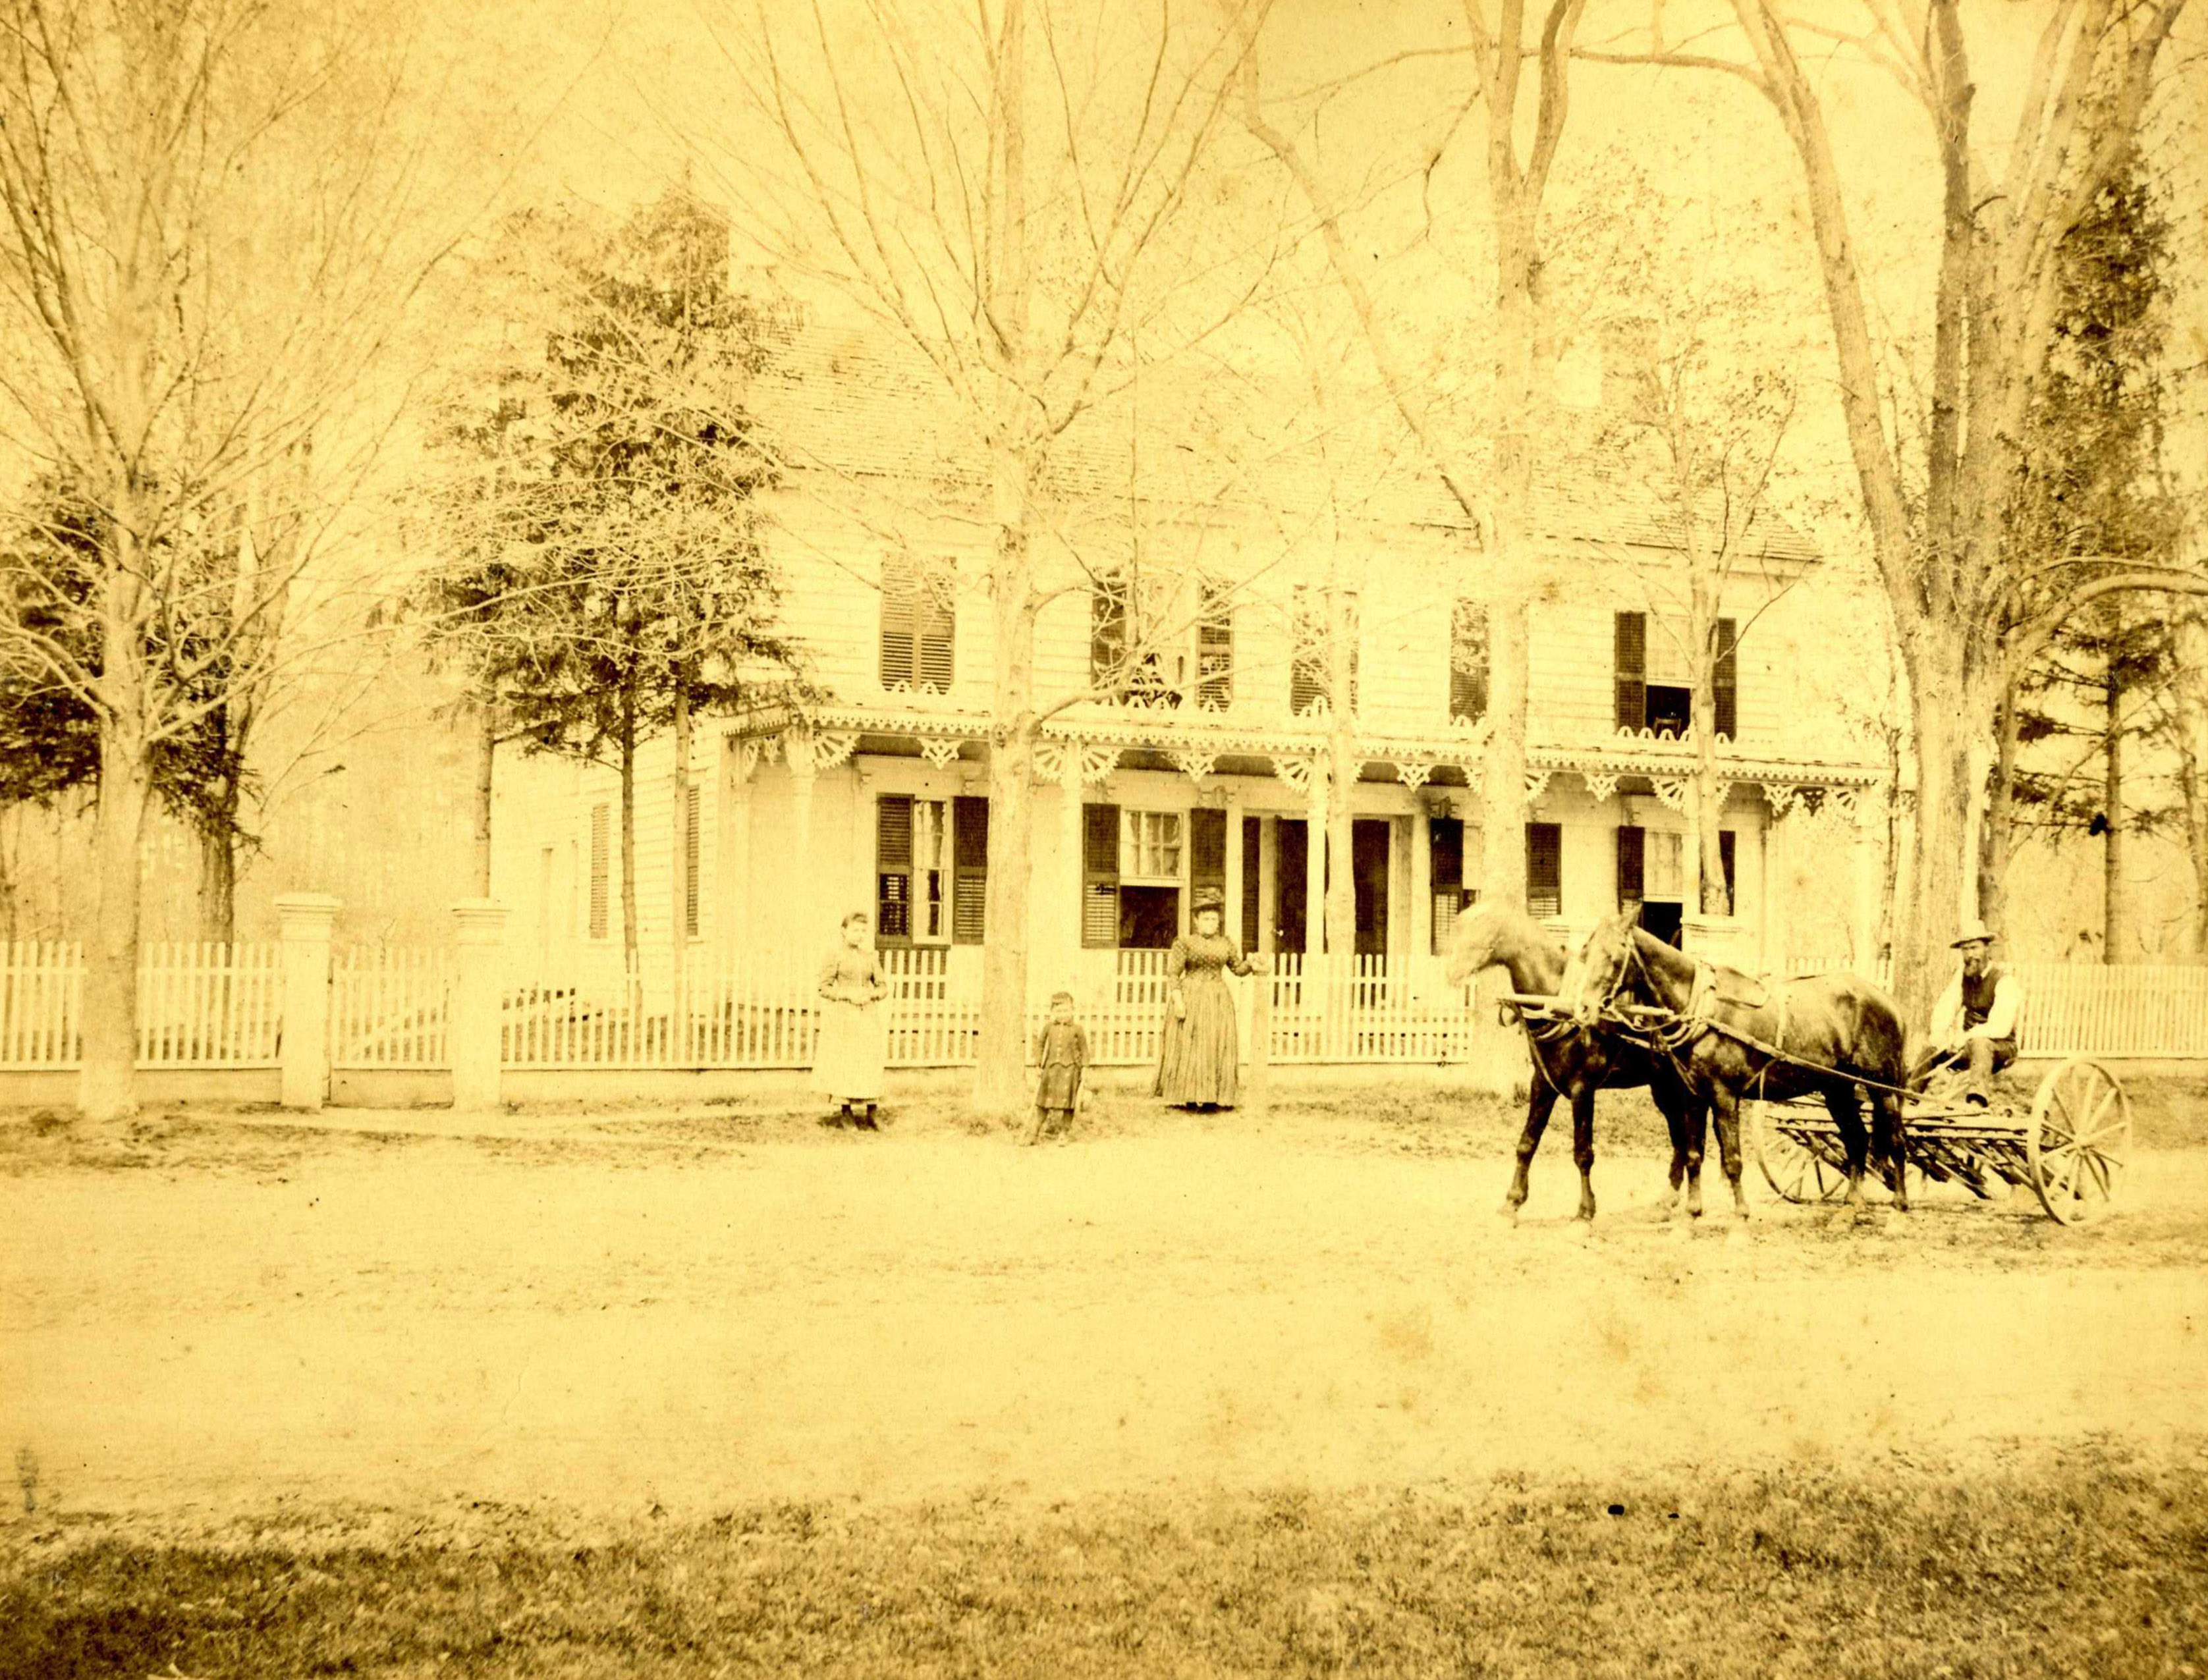 The New Concord b&b in a photo from the 1800's with two horses and a buggy